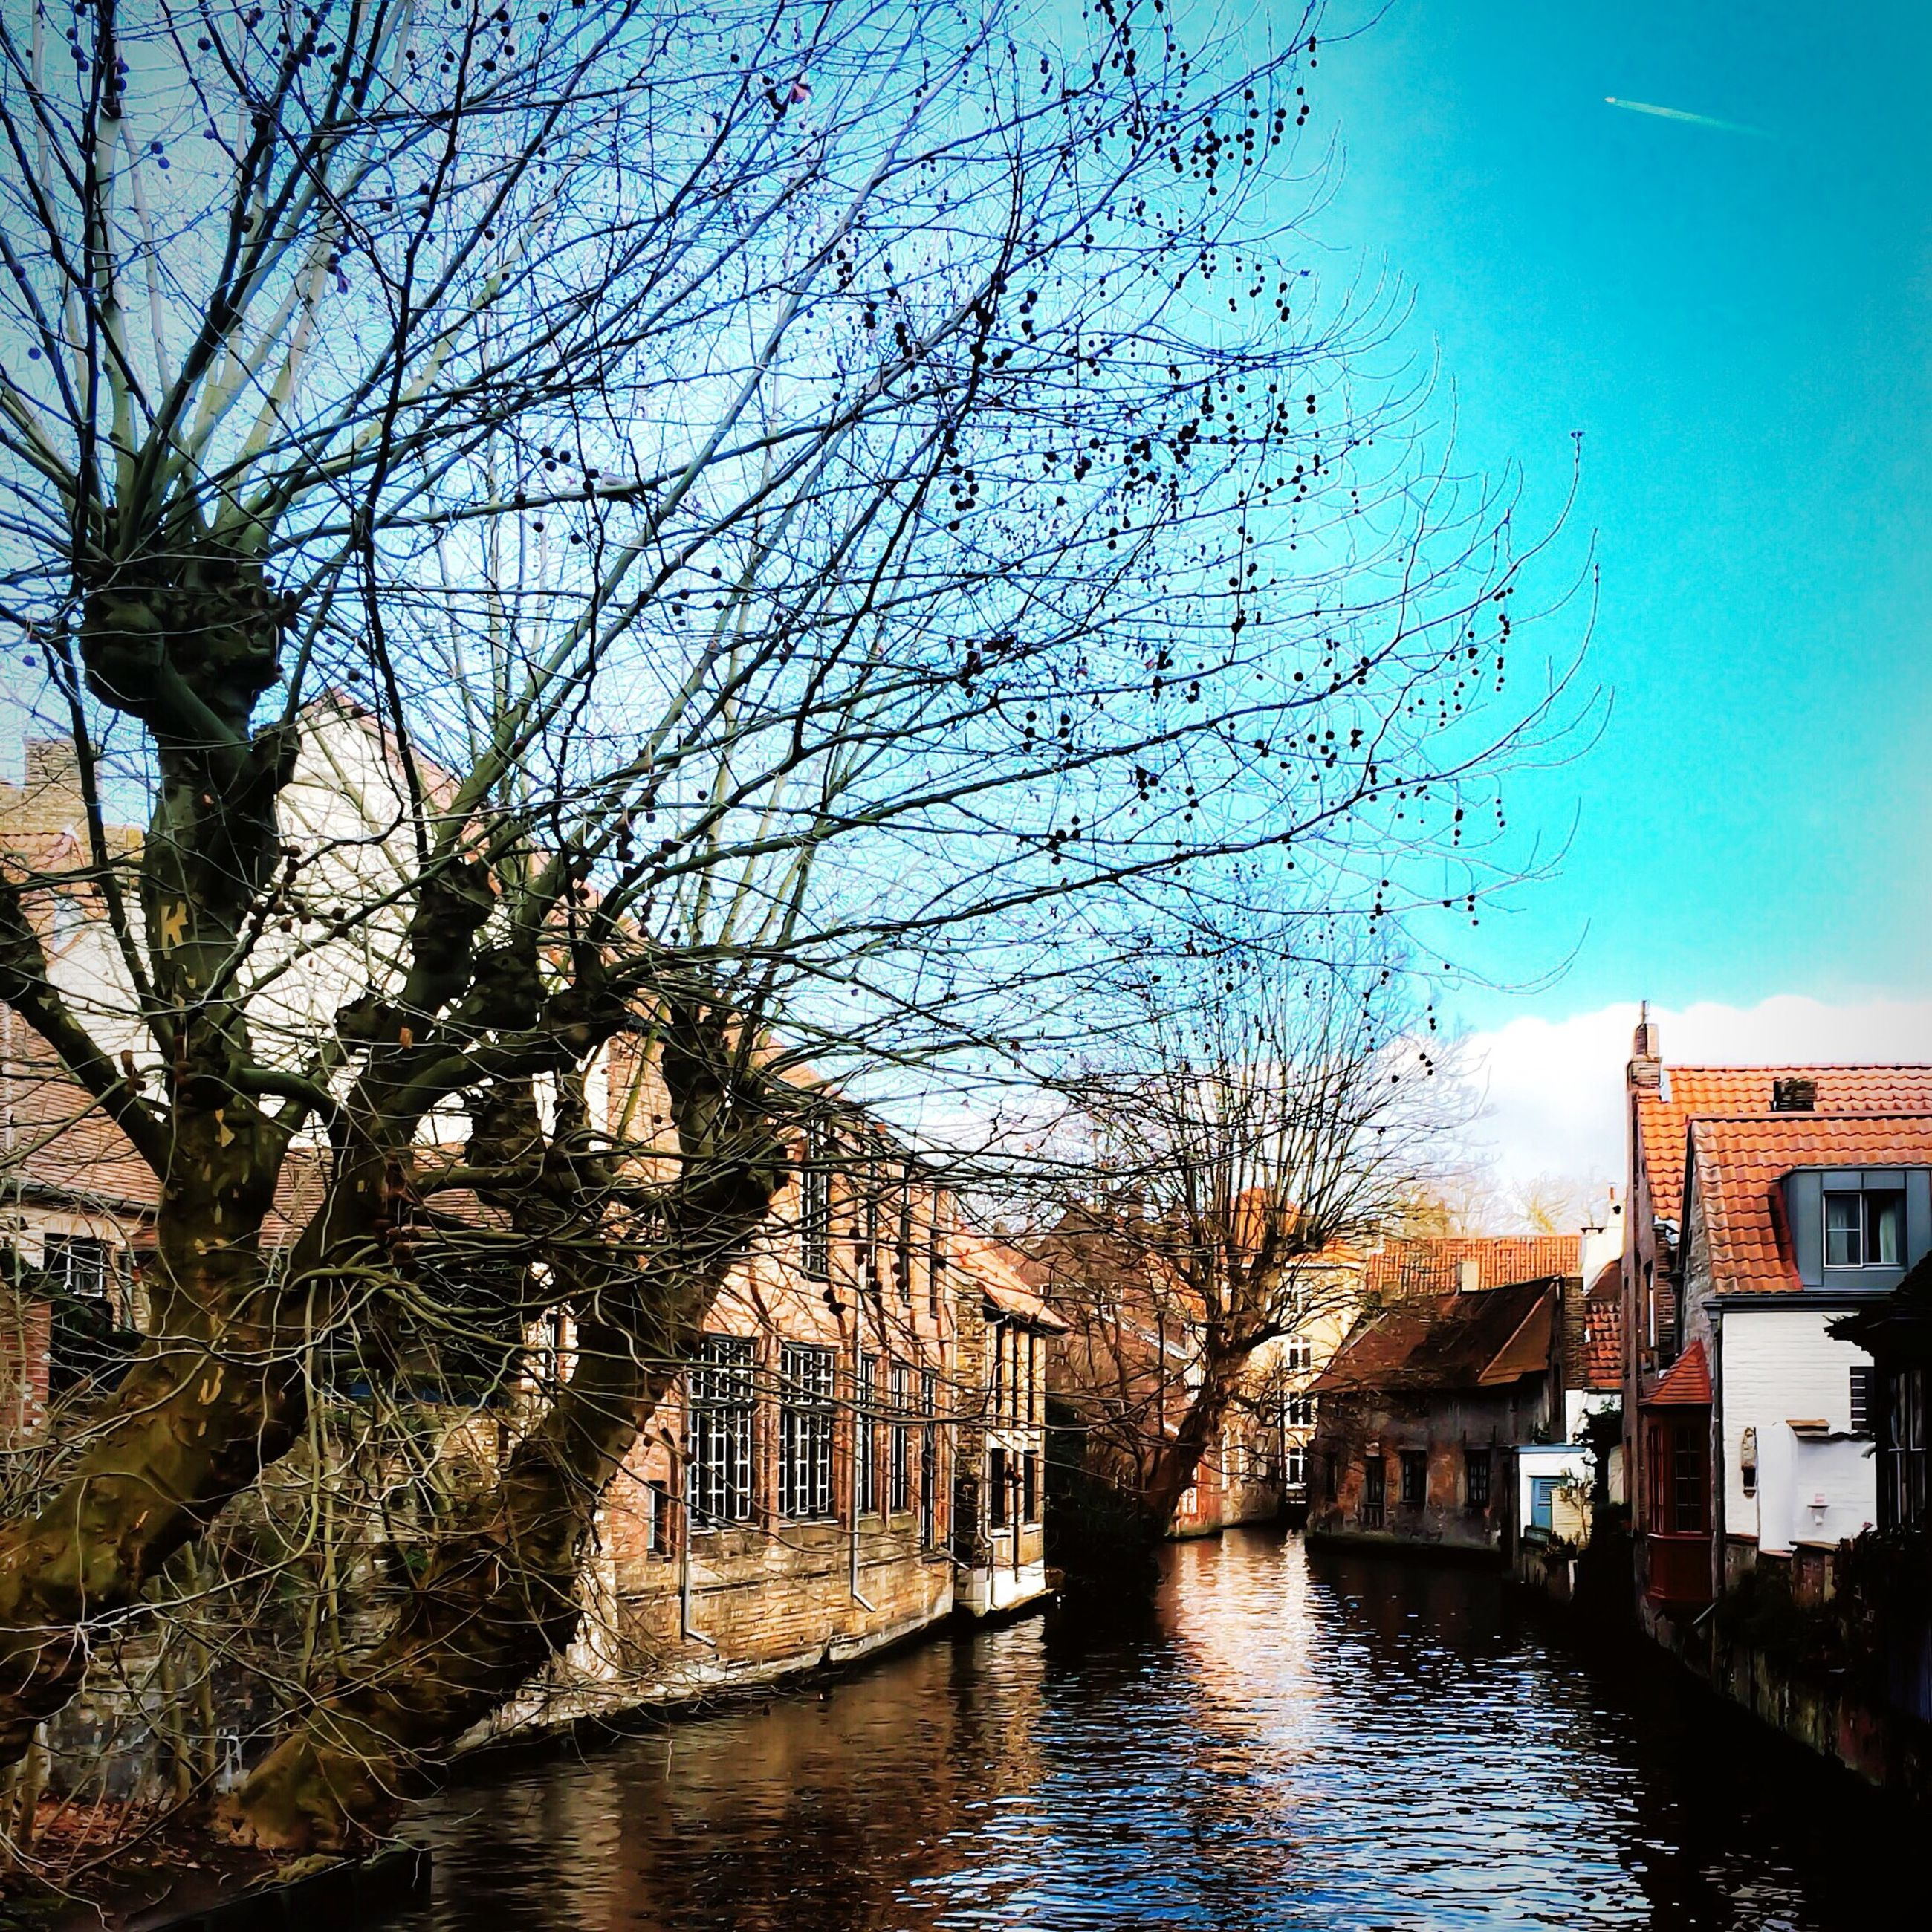 building exterior, architecture, built structure, water, tree, bare tree, waterfront, reflection, canal, residential building, sky, city, branch, river, residential structure, house, building, residential district, no people, day